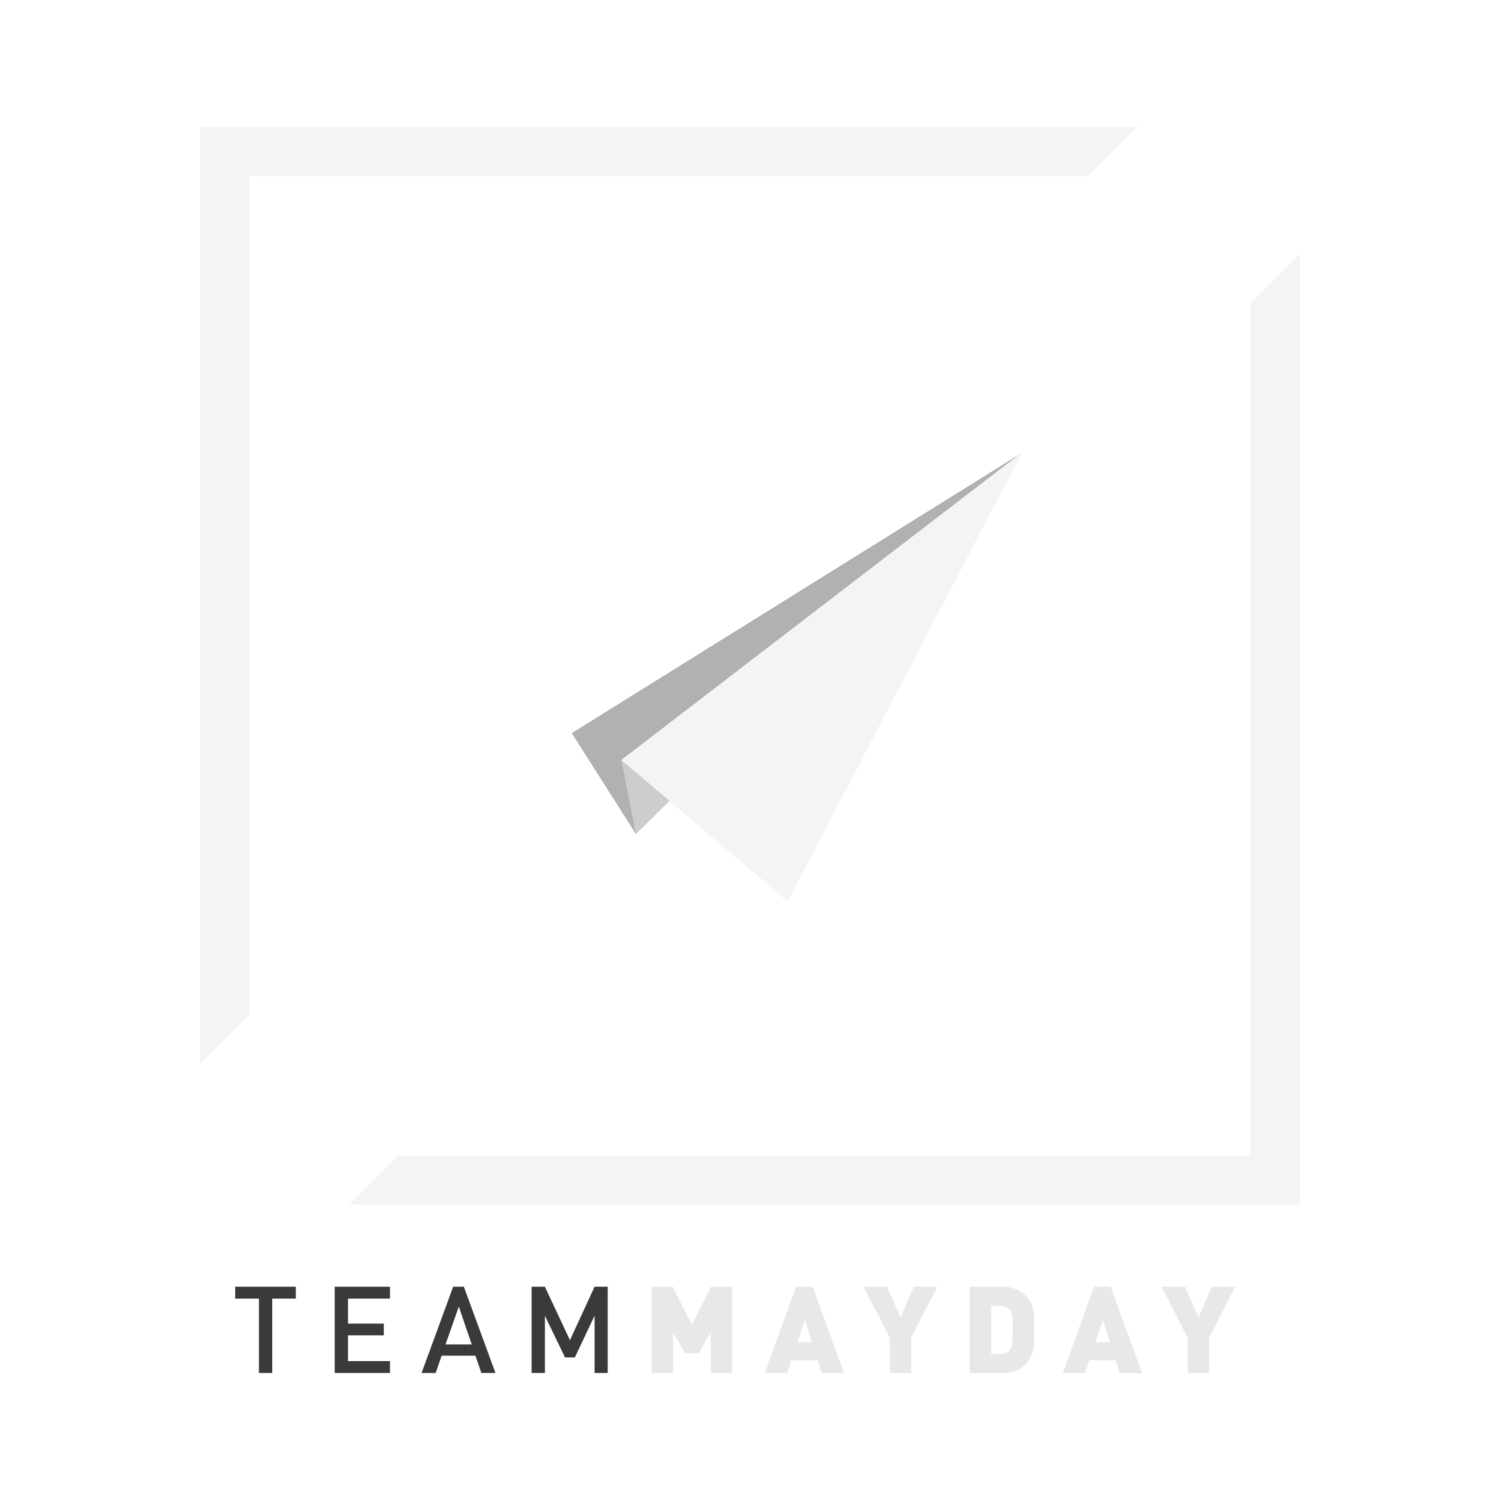 Team Mayday